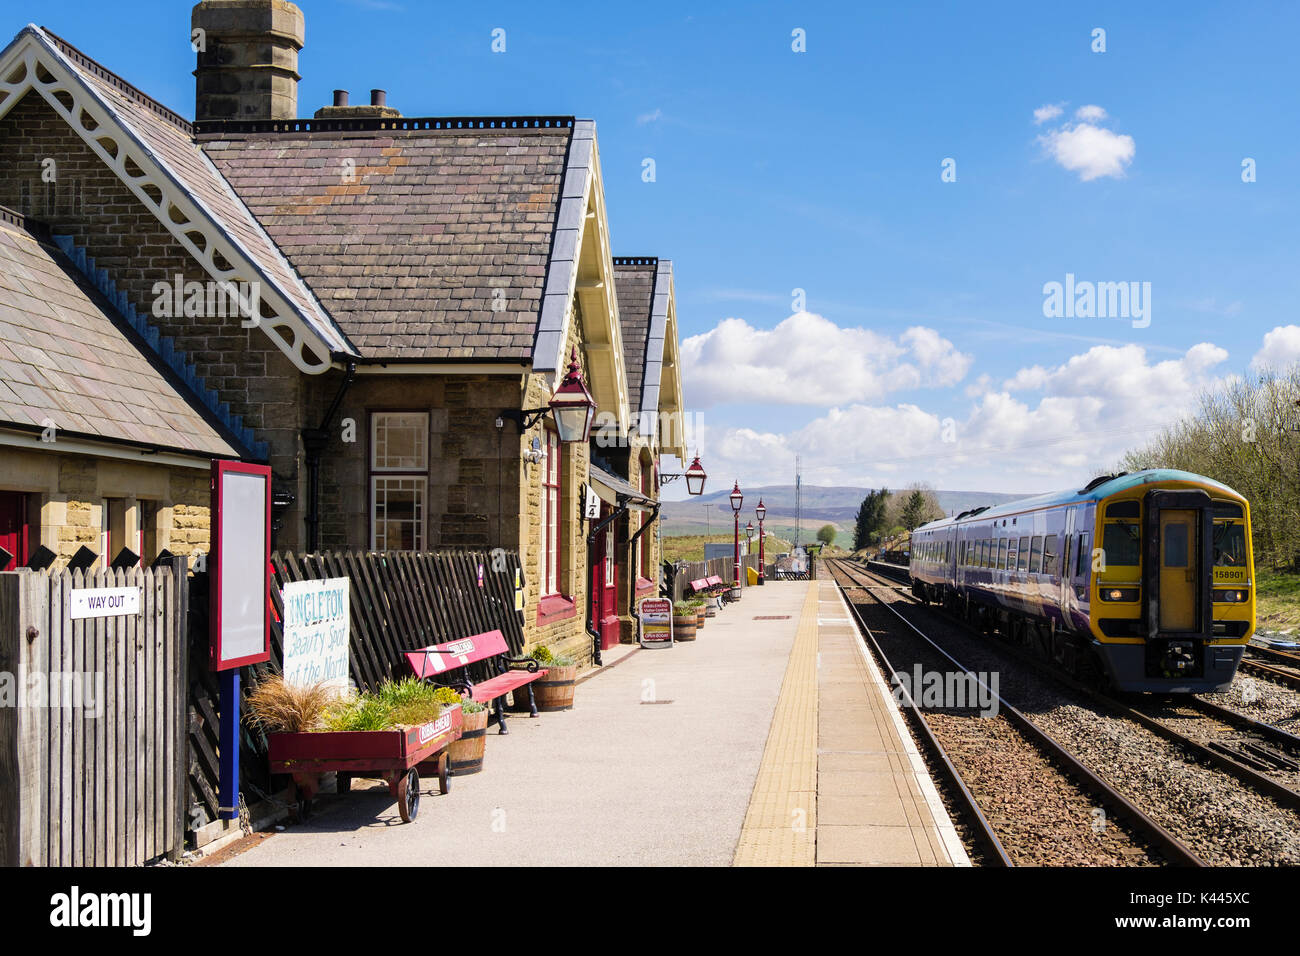 Passenger train leaving Ribblehead station on Settle to Carlise railway line. Yorkshire Dales National Park West Riding North Yorkshire England UK - Stock Image